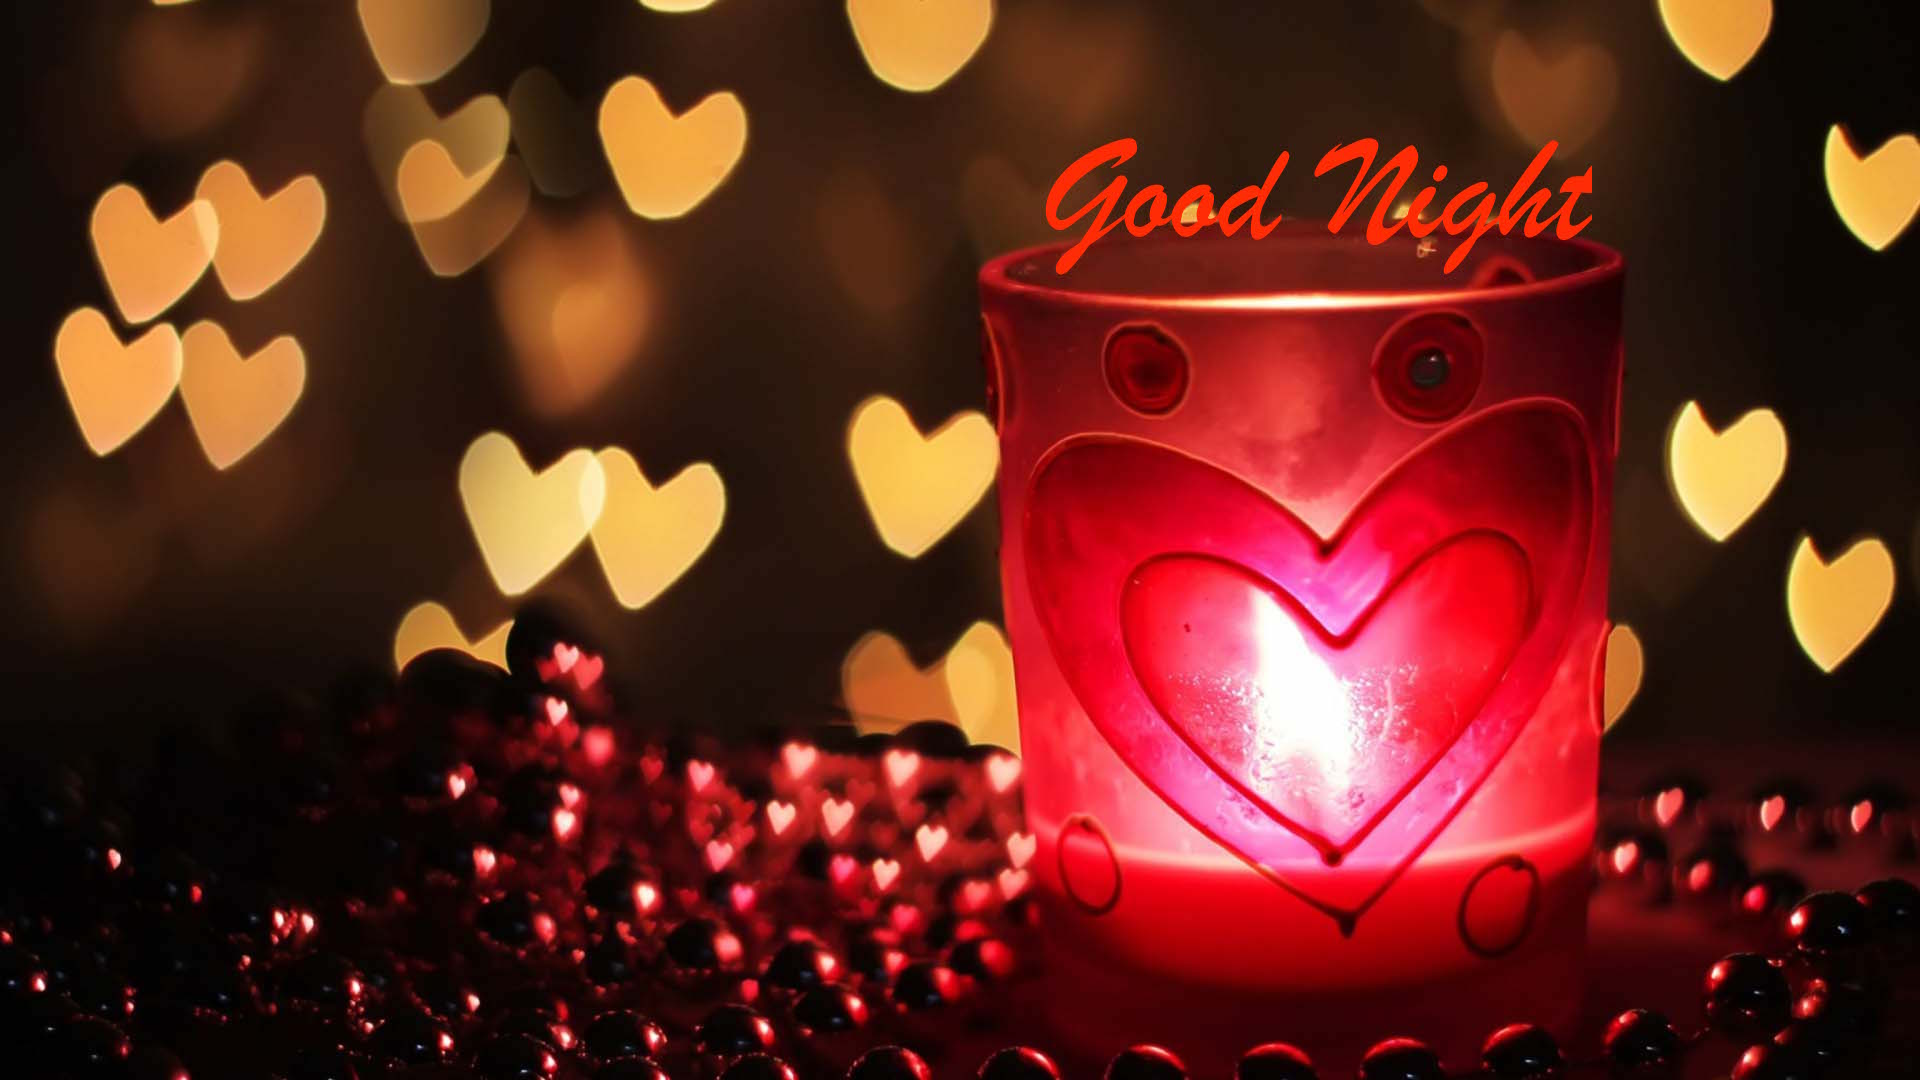 Good night heart red image